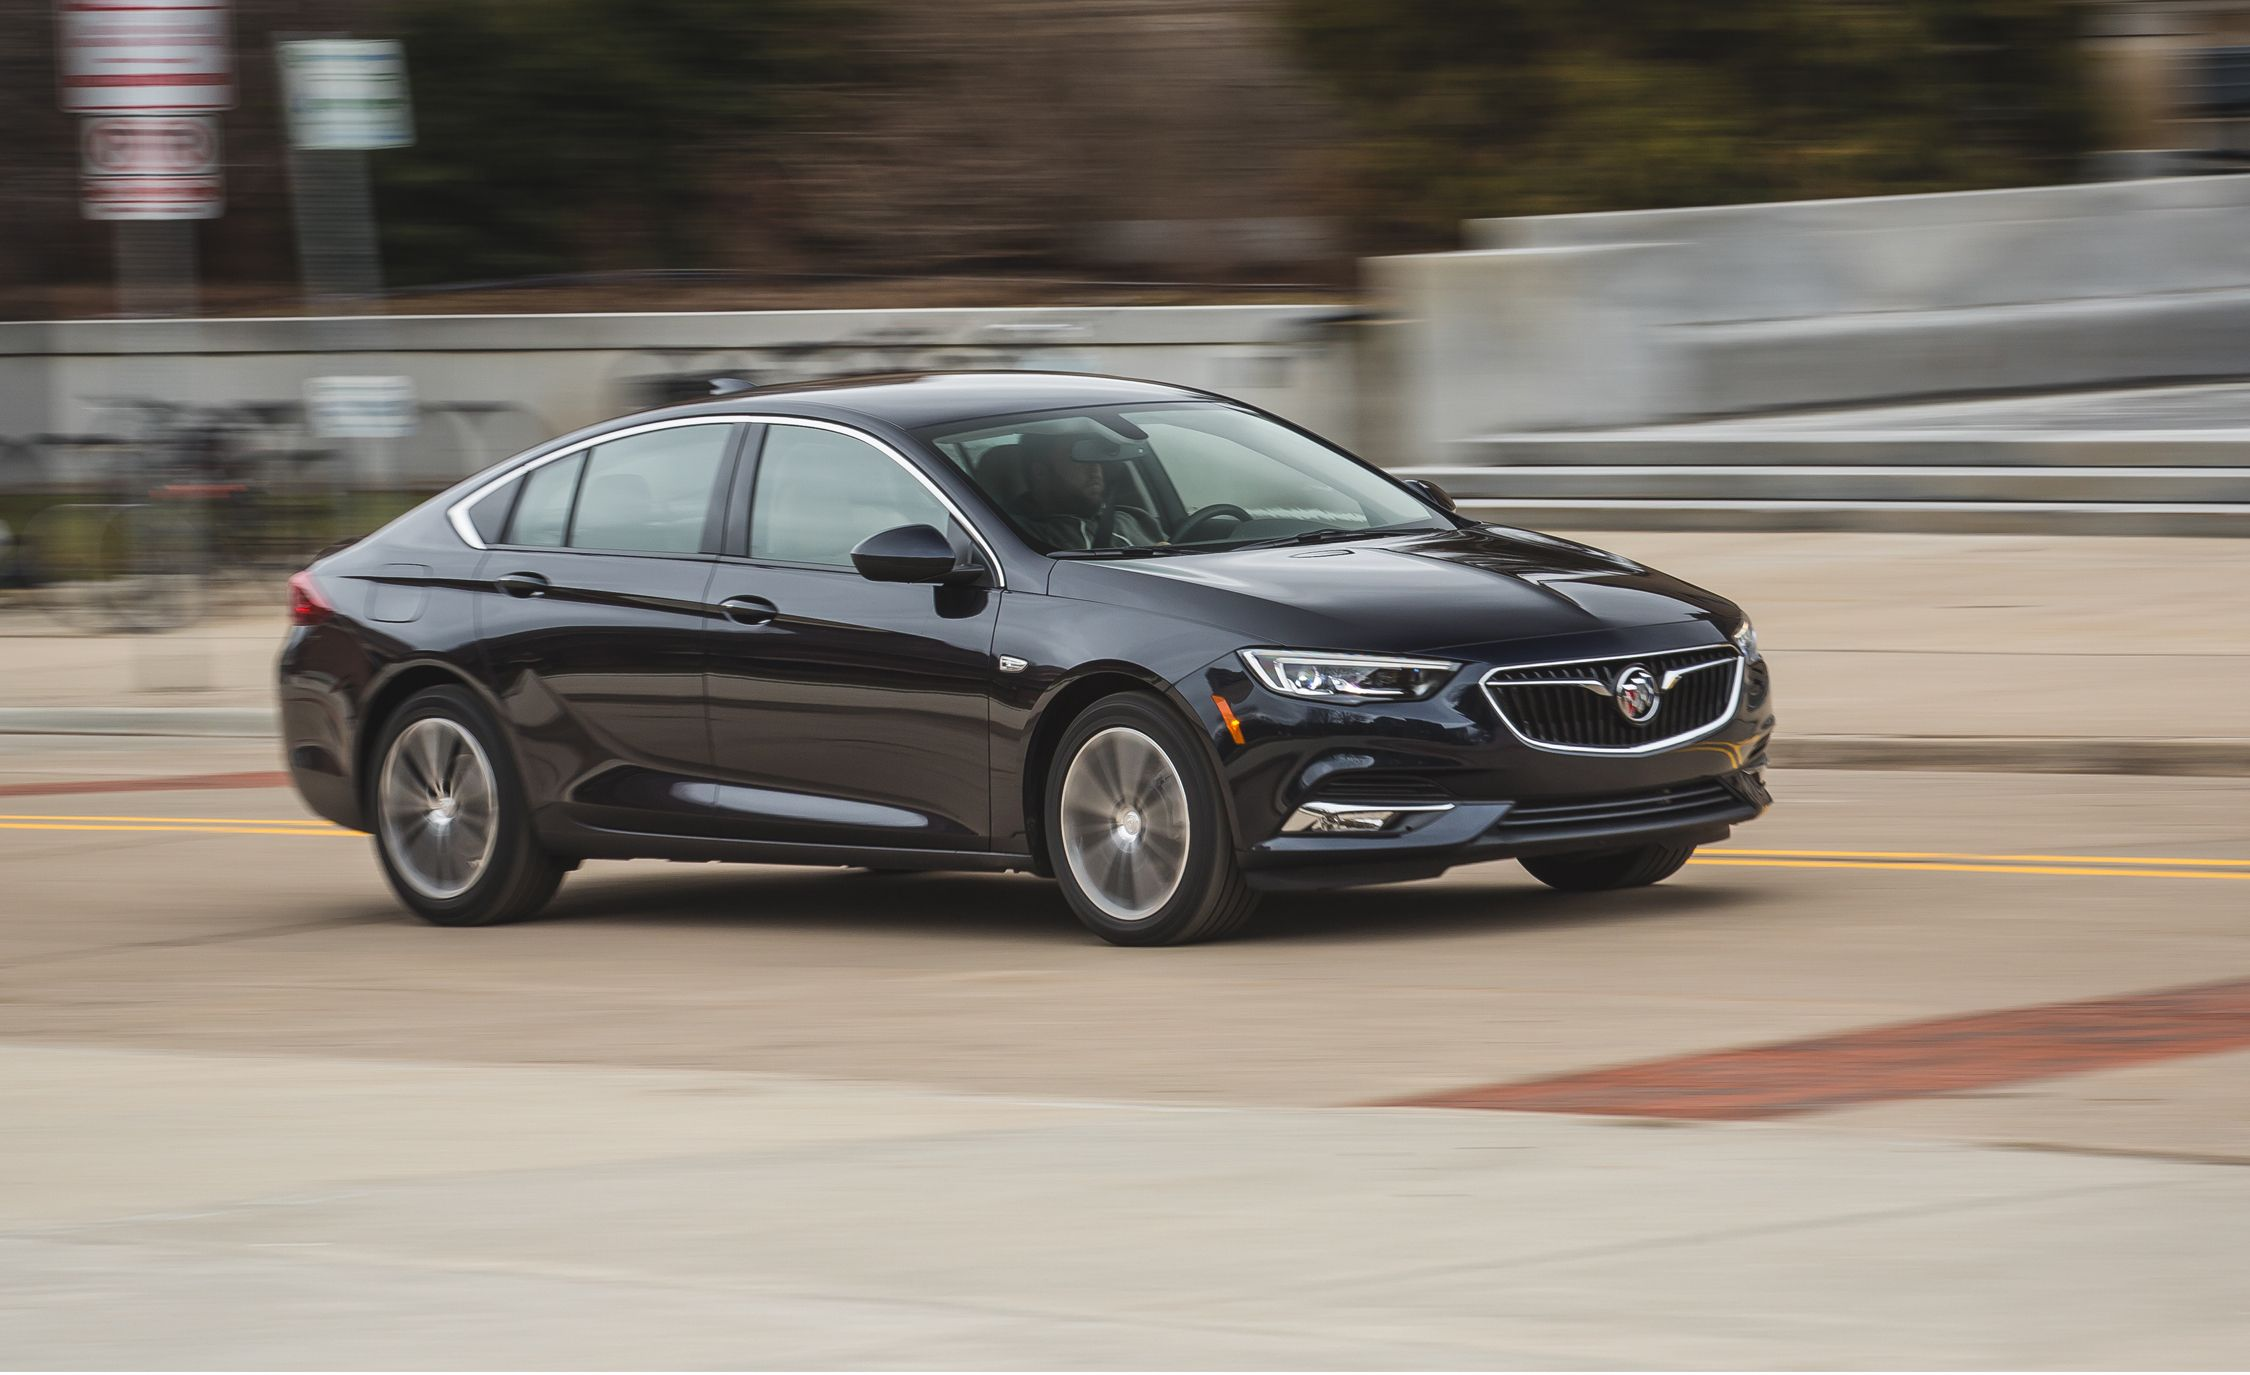 2018 Buick Regal Sportback FWD Test | Review | Car and Driver